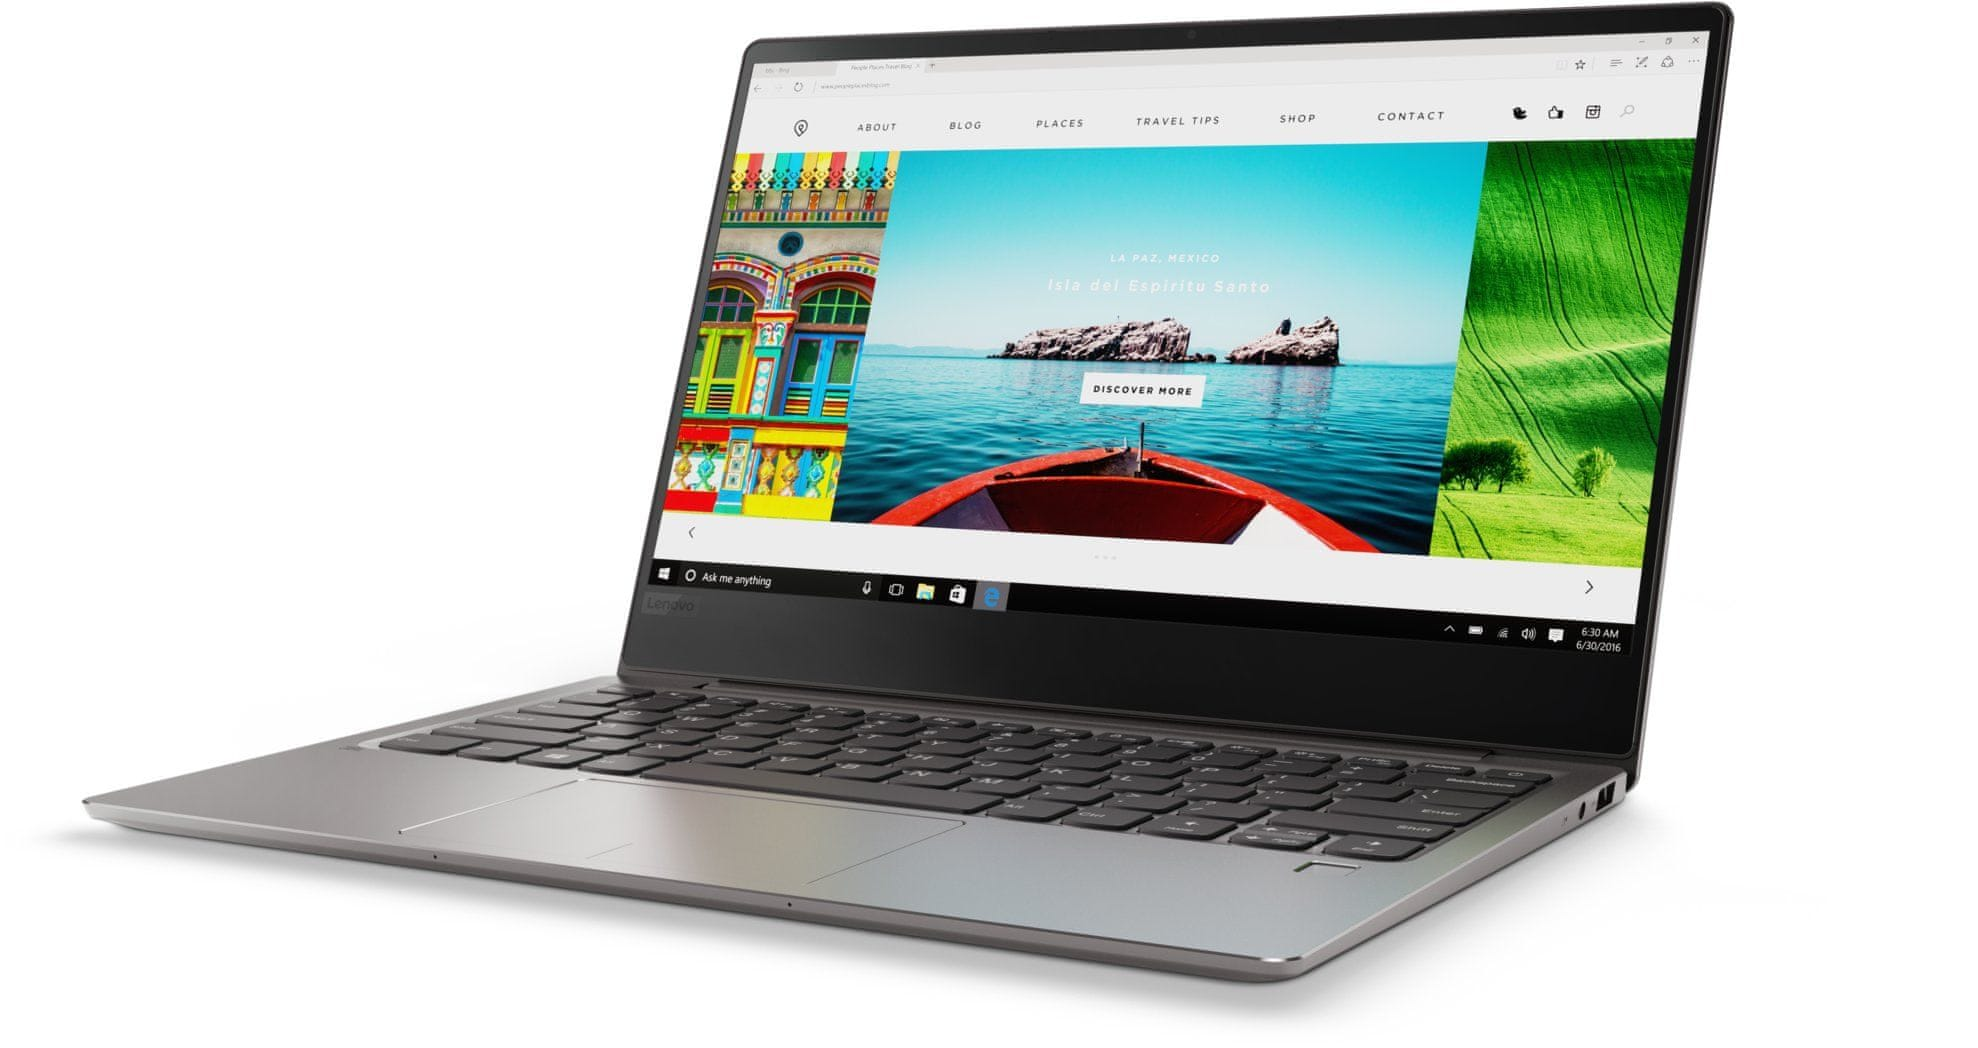 Notebook IdeaPad 720s